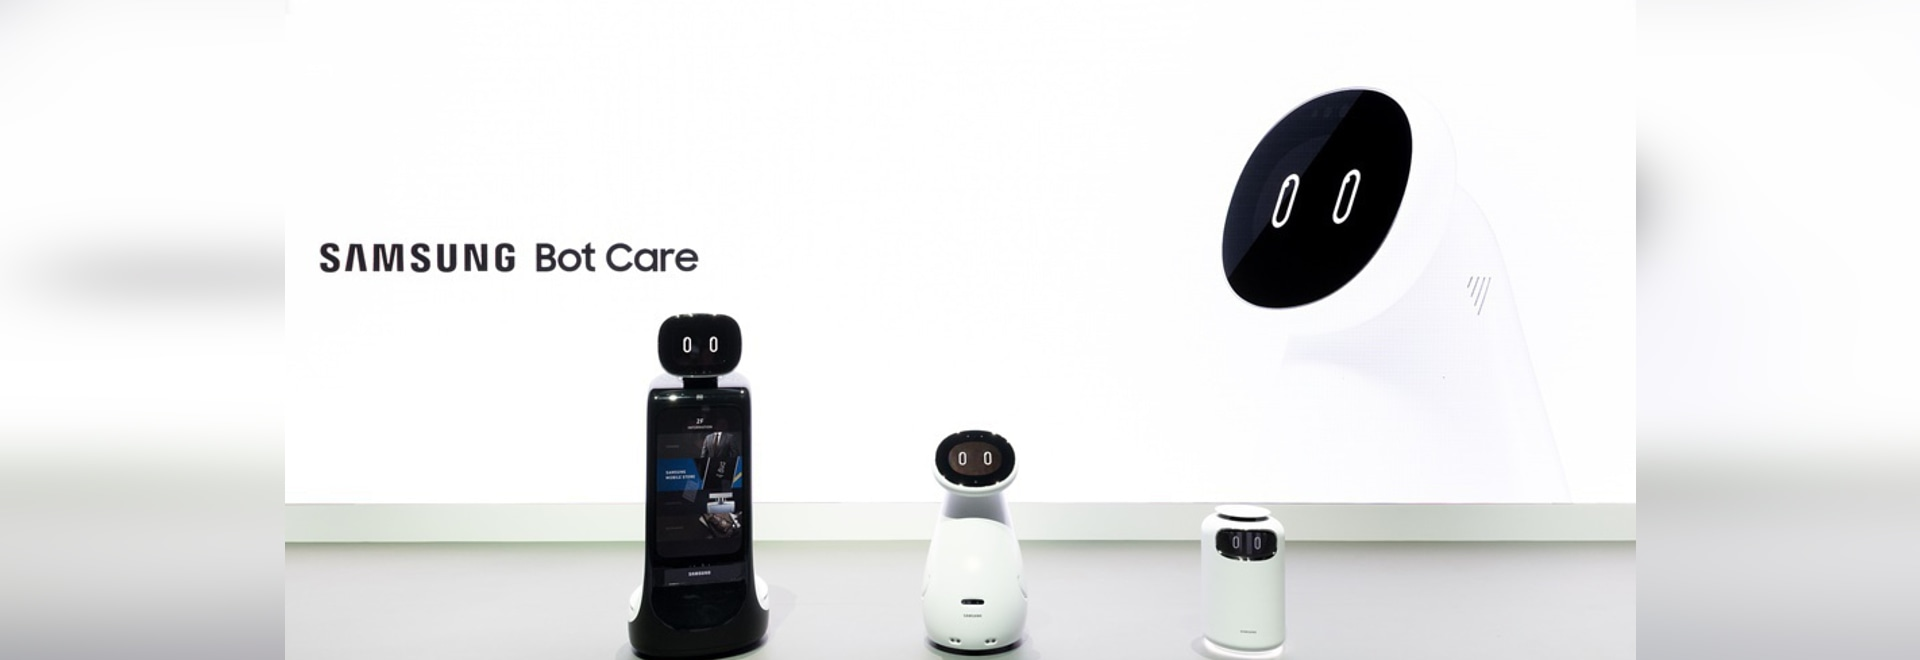 (From Left) Samsung Bot Retail, Samsung Bot Care, Samsung Bot Air. The three Samsung Bots were debuted at CES 2019.